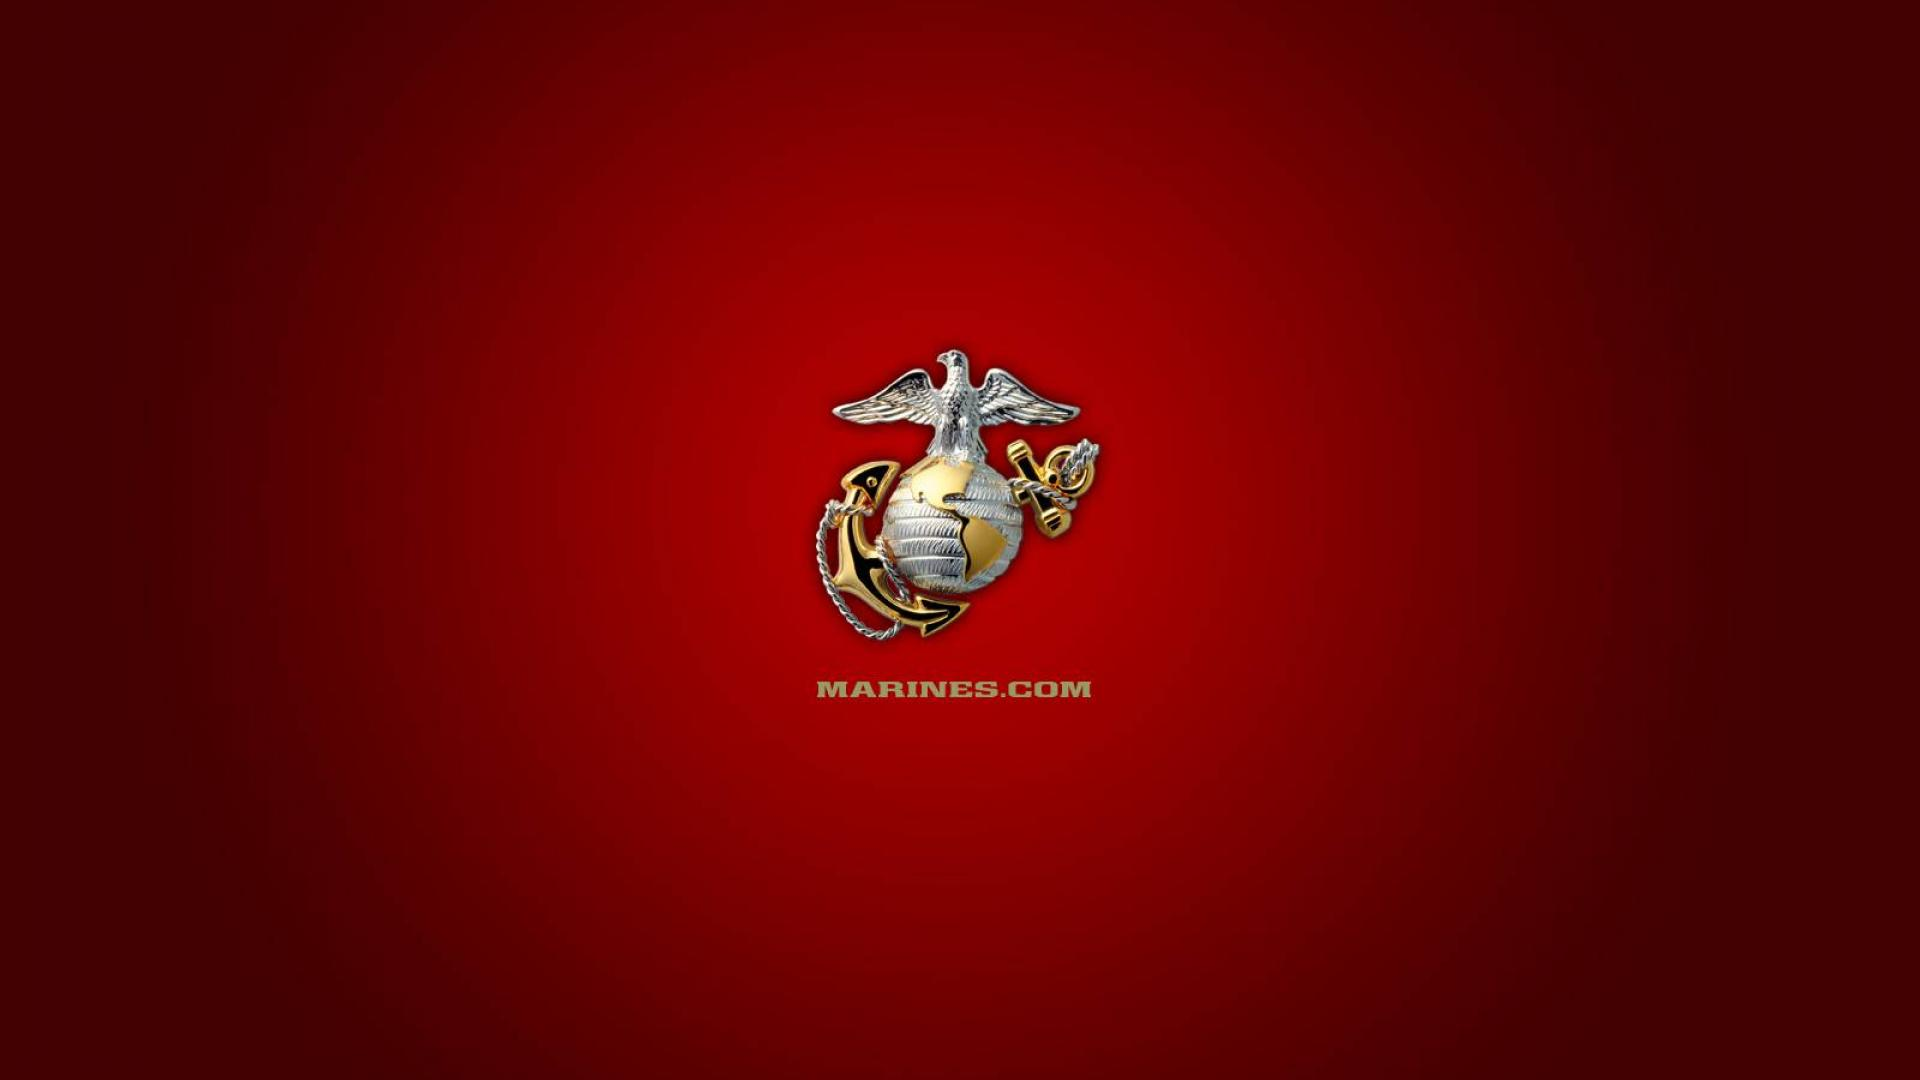 Usmc Logo Wallpaper Related Keywords amp Suggestions   Usmc 1920x1080